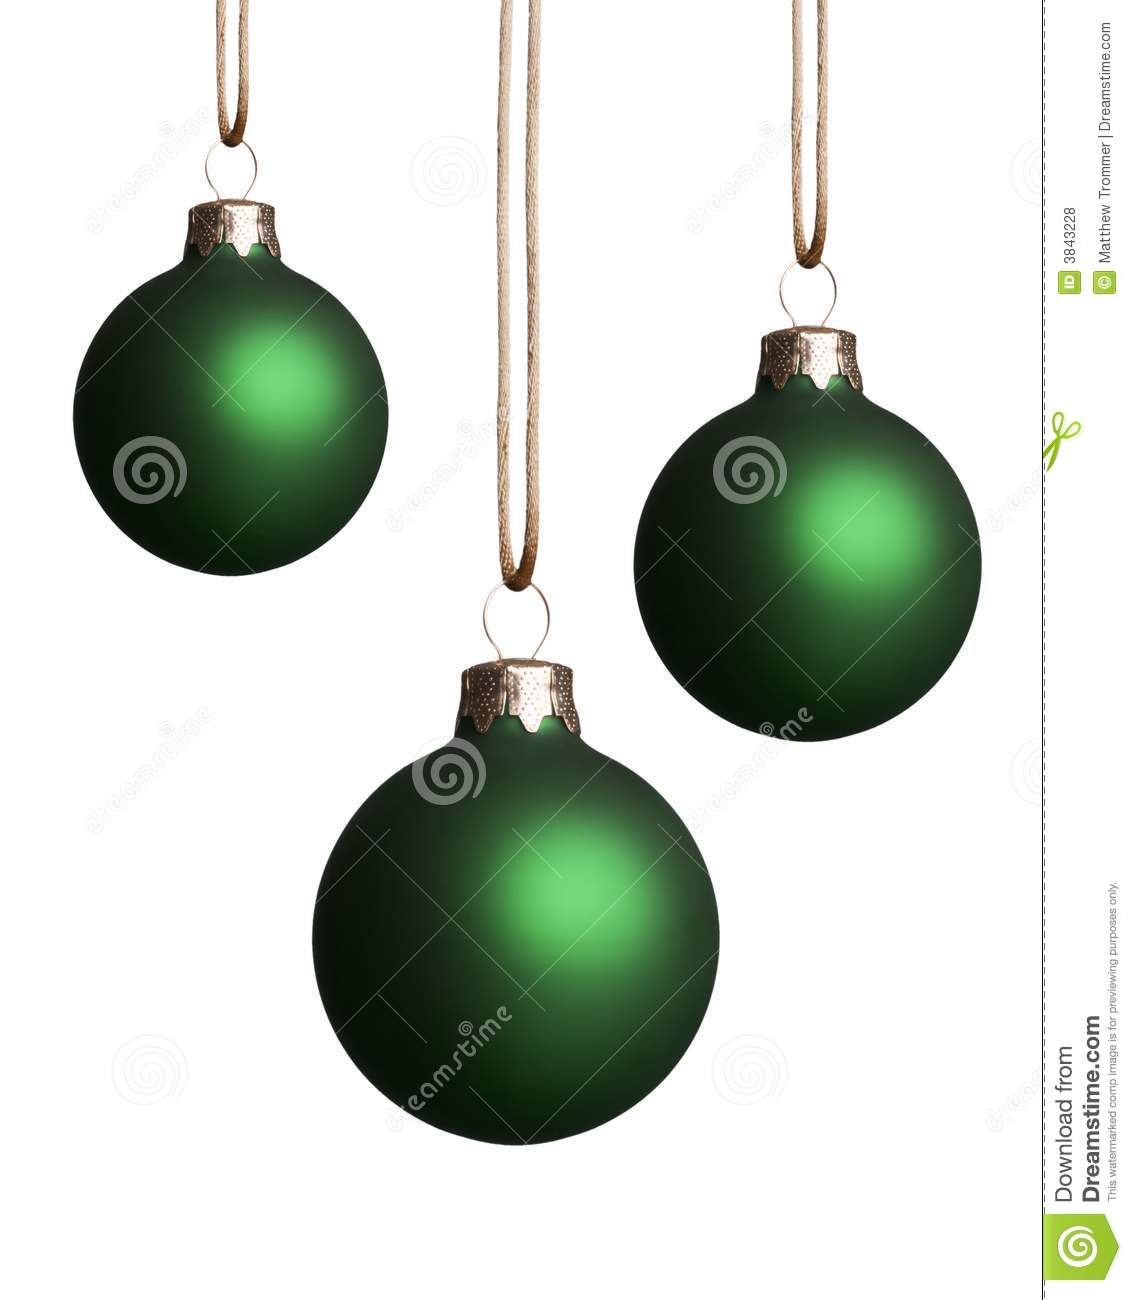 Hanging green christmas ornaments stock photo image of gold shiny 3843228 - Hanging christmas ornaments ...